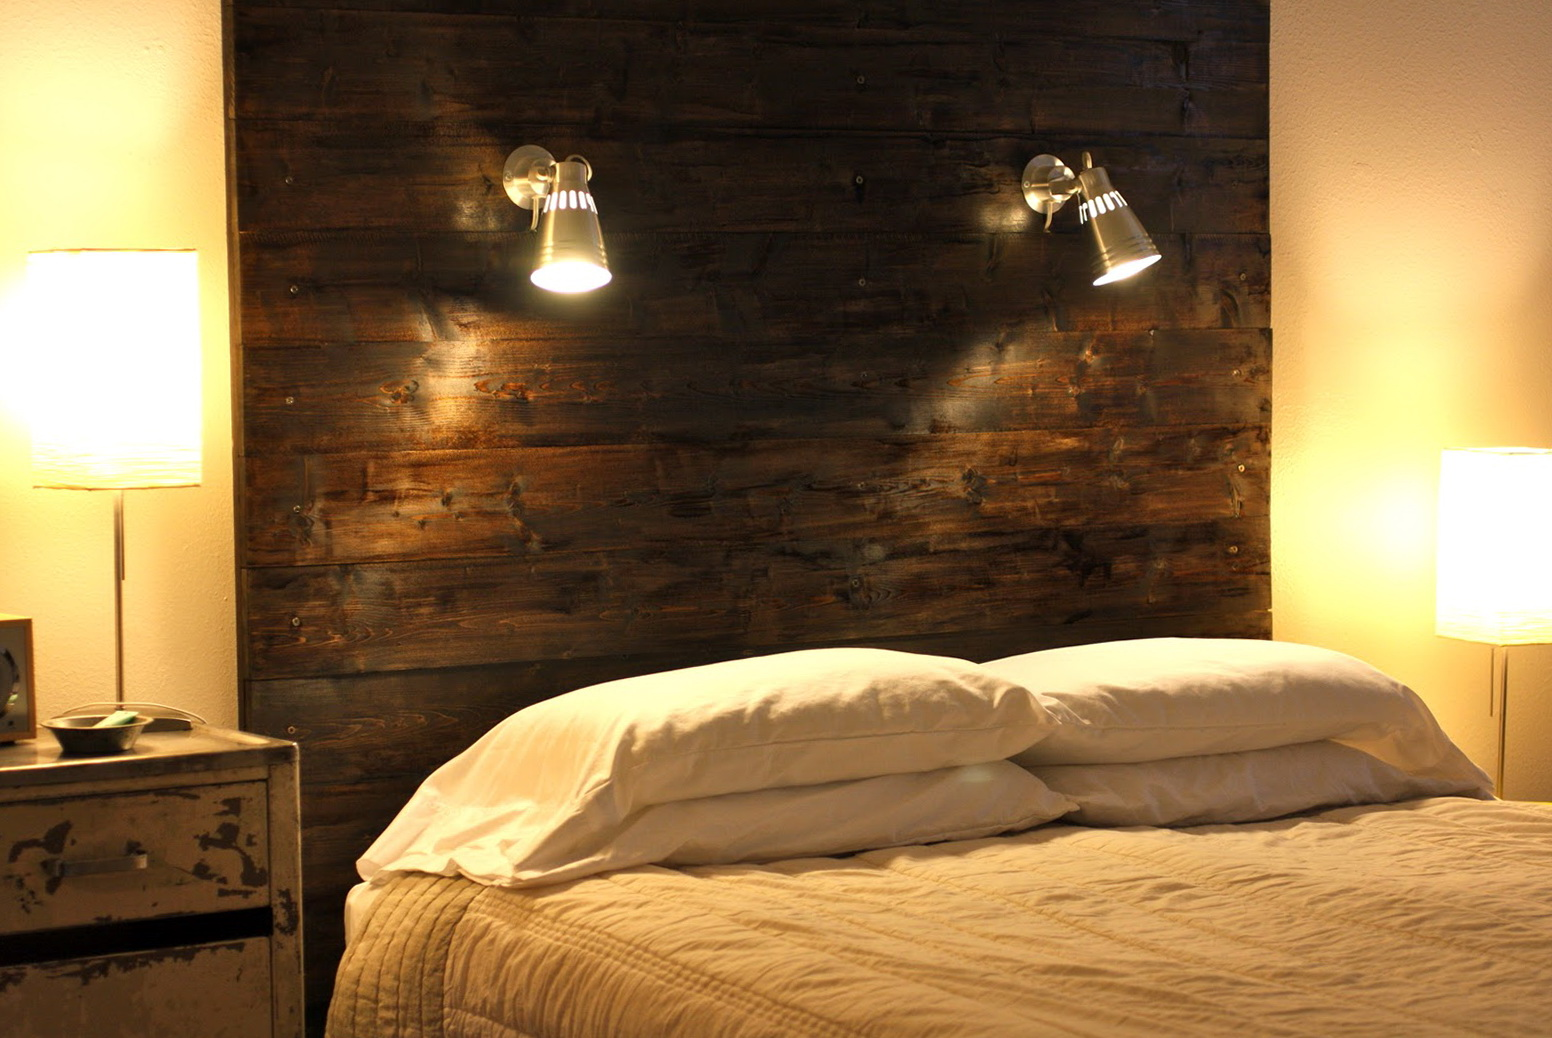 Lights Over Headboard Reading Light Attached Headboard Bed Home Design Ideas